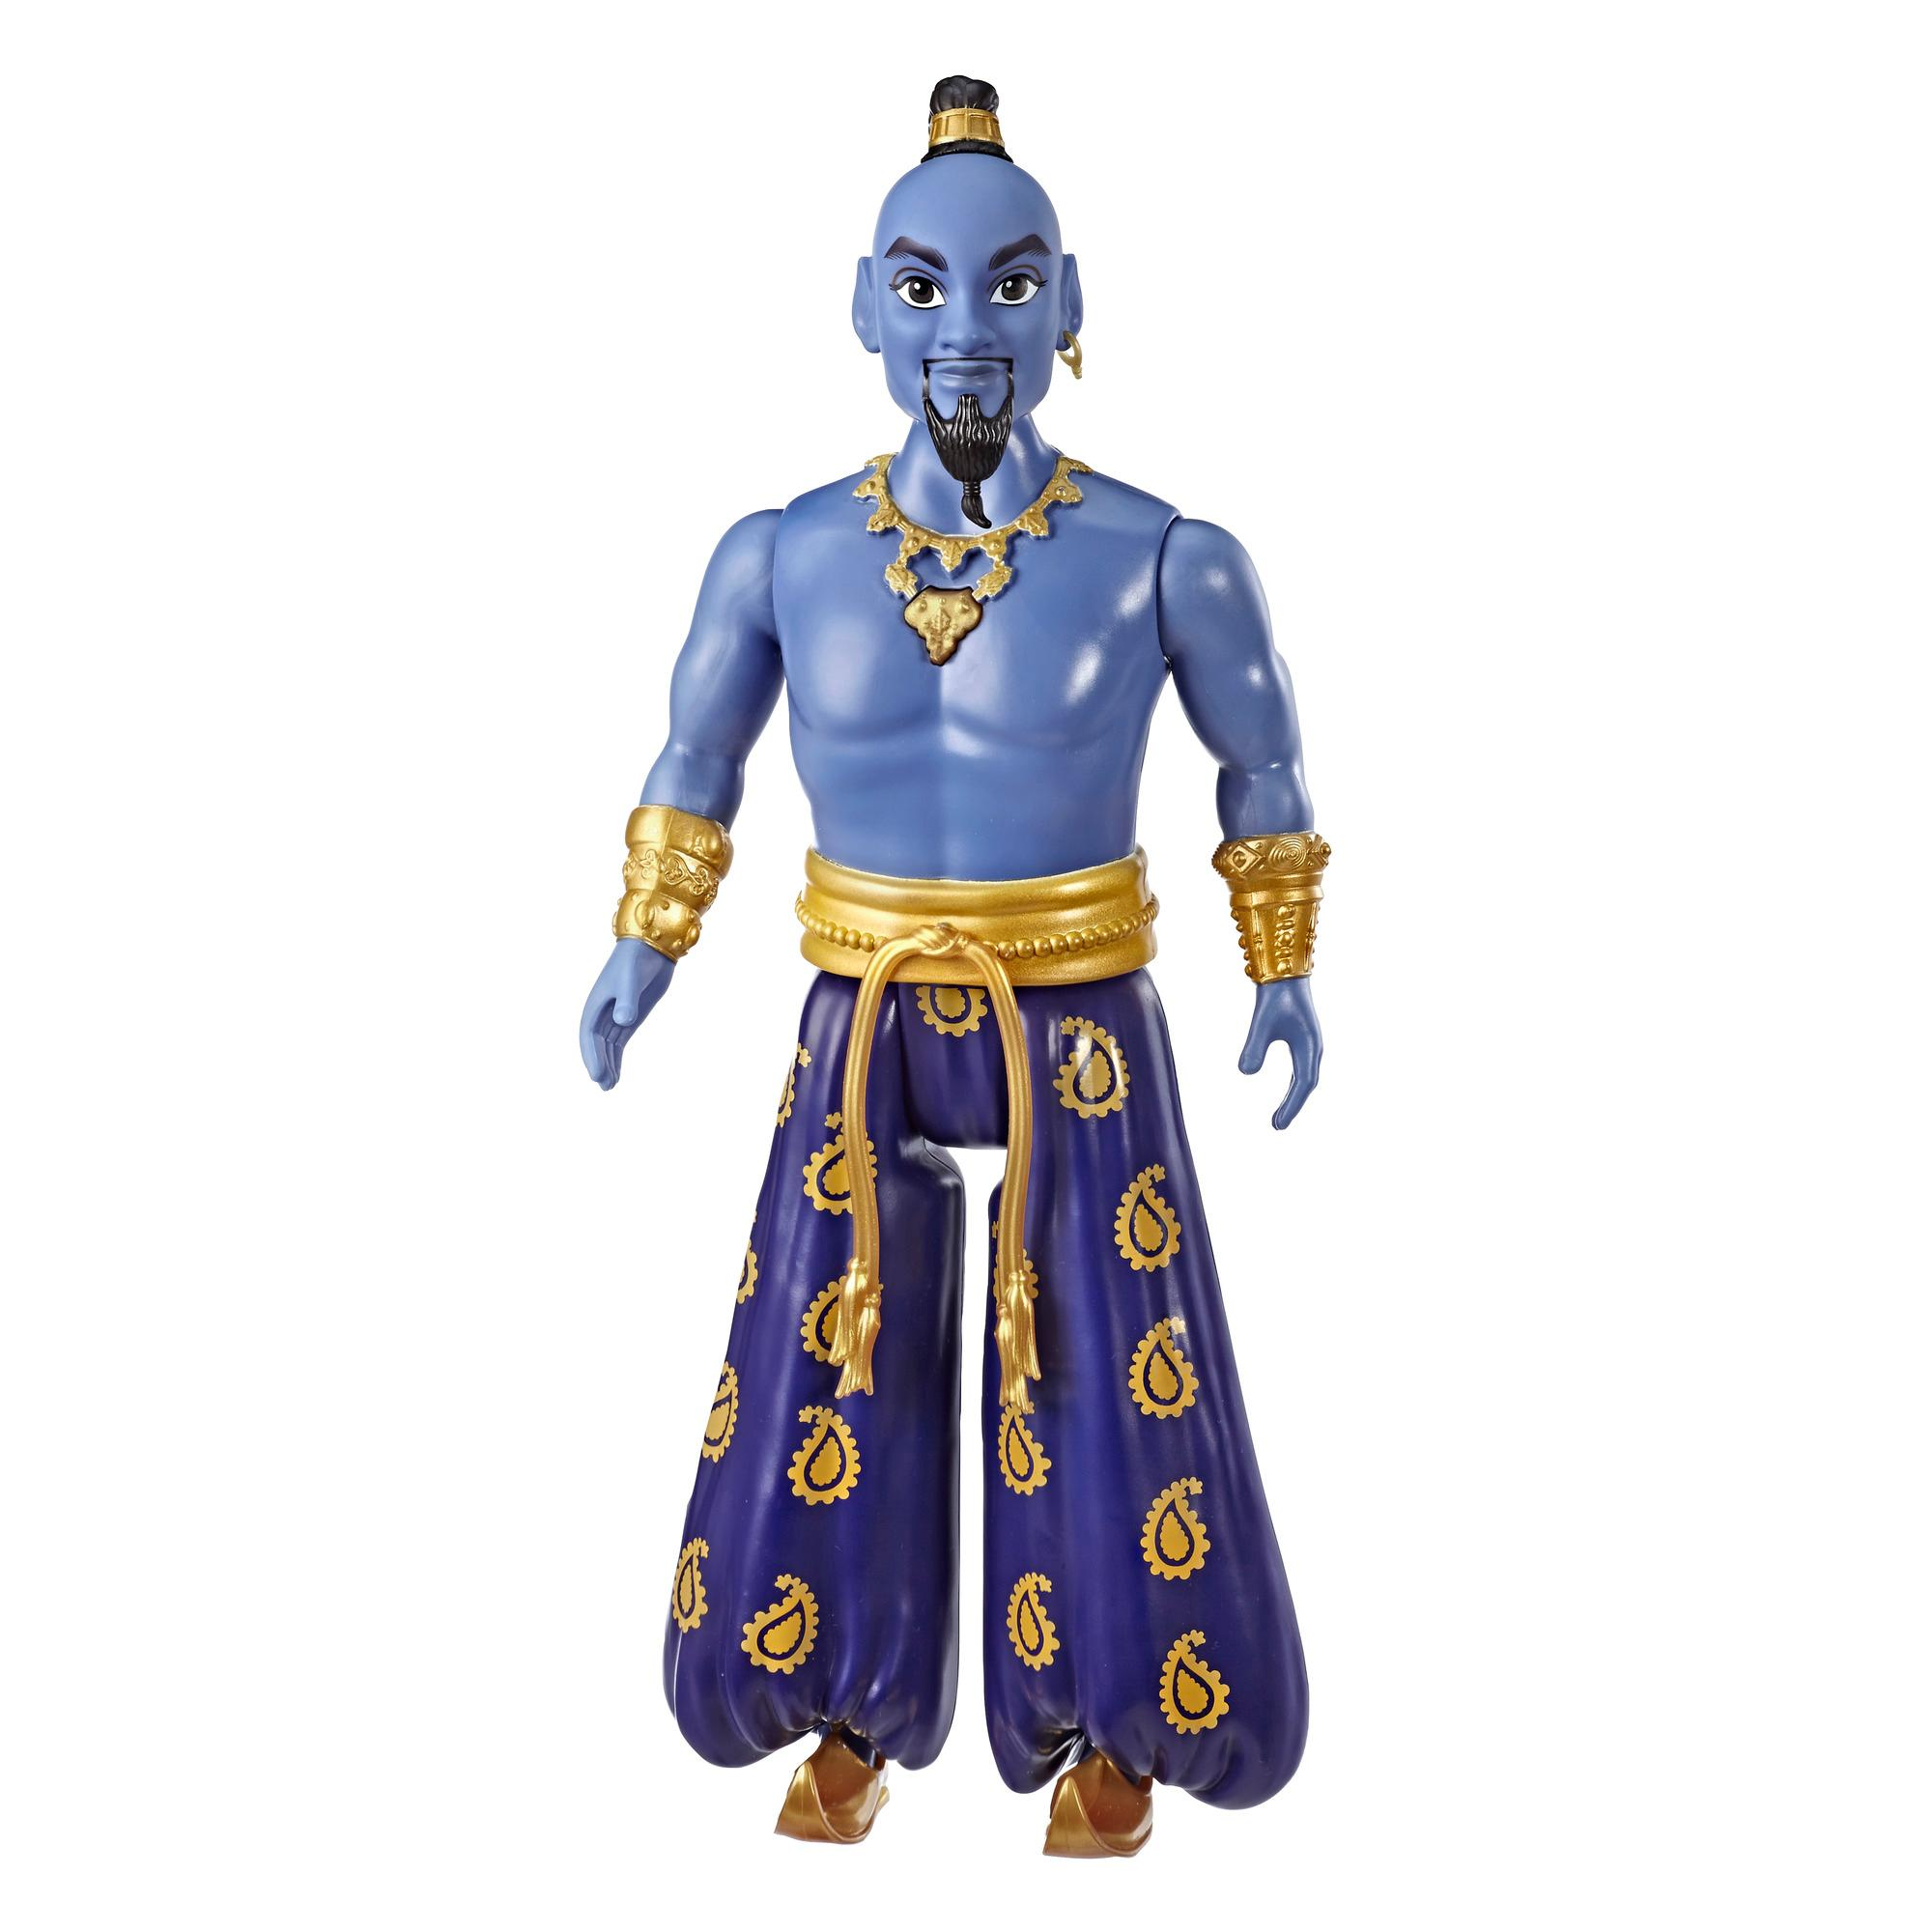 Disney Singing Genie Doll, Inspired by Genie character in Disney's Aladdin Live-Action Movie